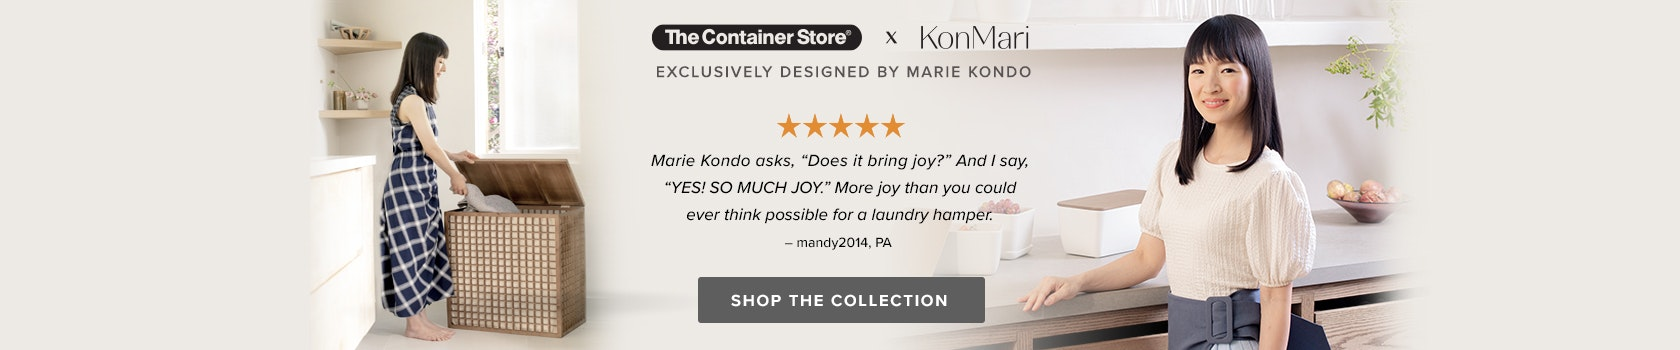 The Container Store x Marie Kondo